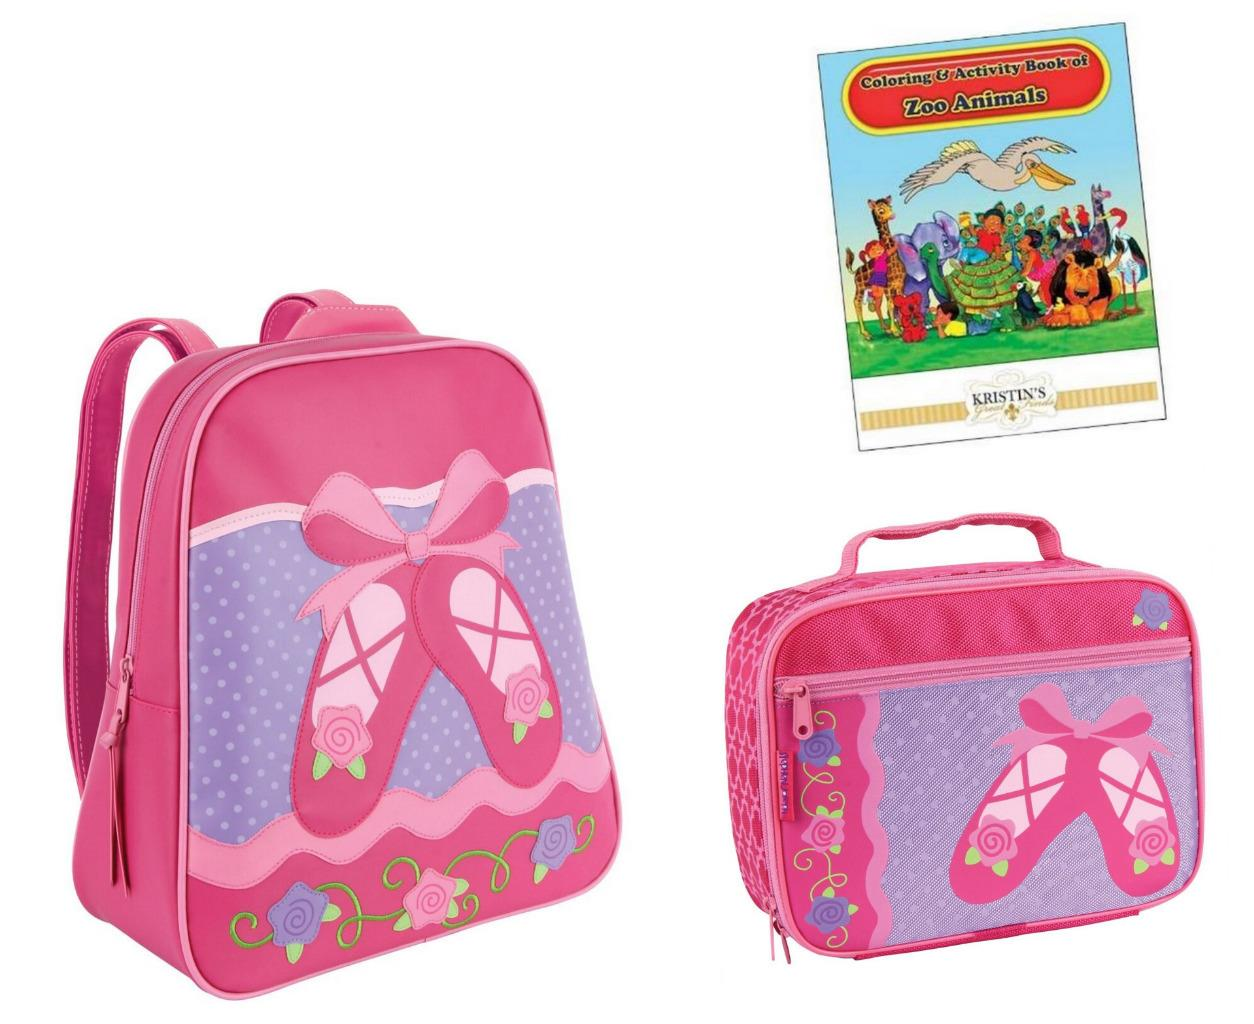 Shop Target for Kids' Backpacks you will love at great low prices. Spend $35+ or use your REDcard & get free 2-day shipping on most items or same-day pick-up in store. Lunch Bags & Boxes. Water Bottles. Pencil Cases. Key Chains & Bag Decorations. School Supplies. Kids' Back to School Hub. filter results. Kids space backpack is perfect.